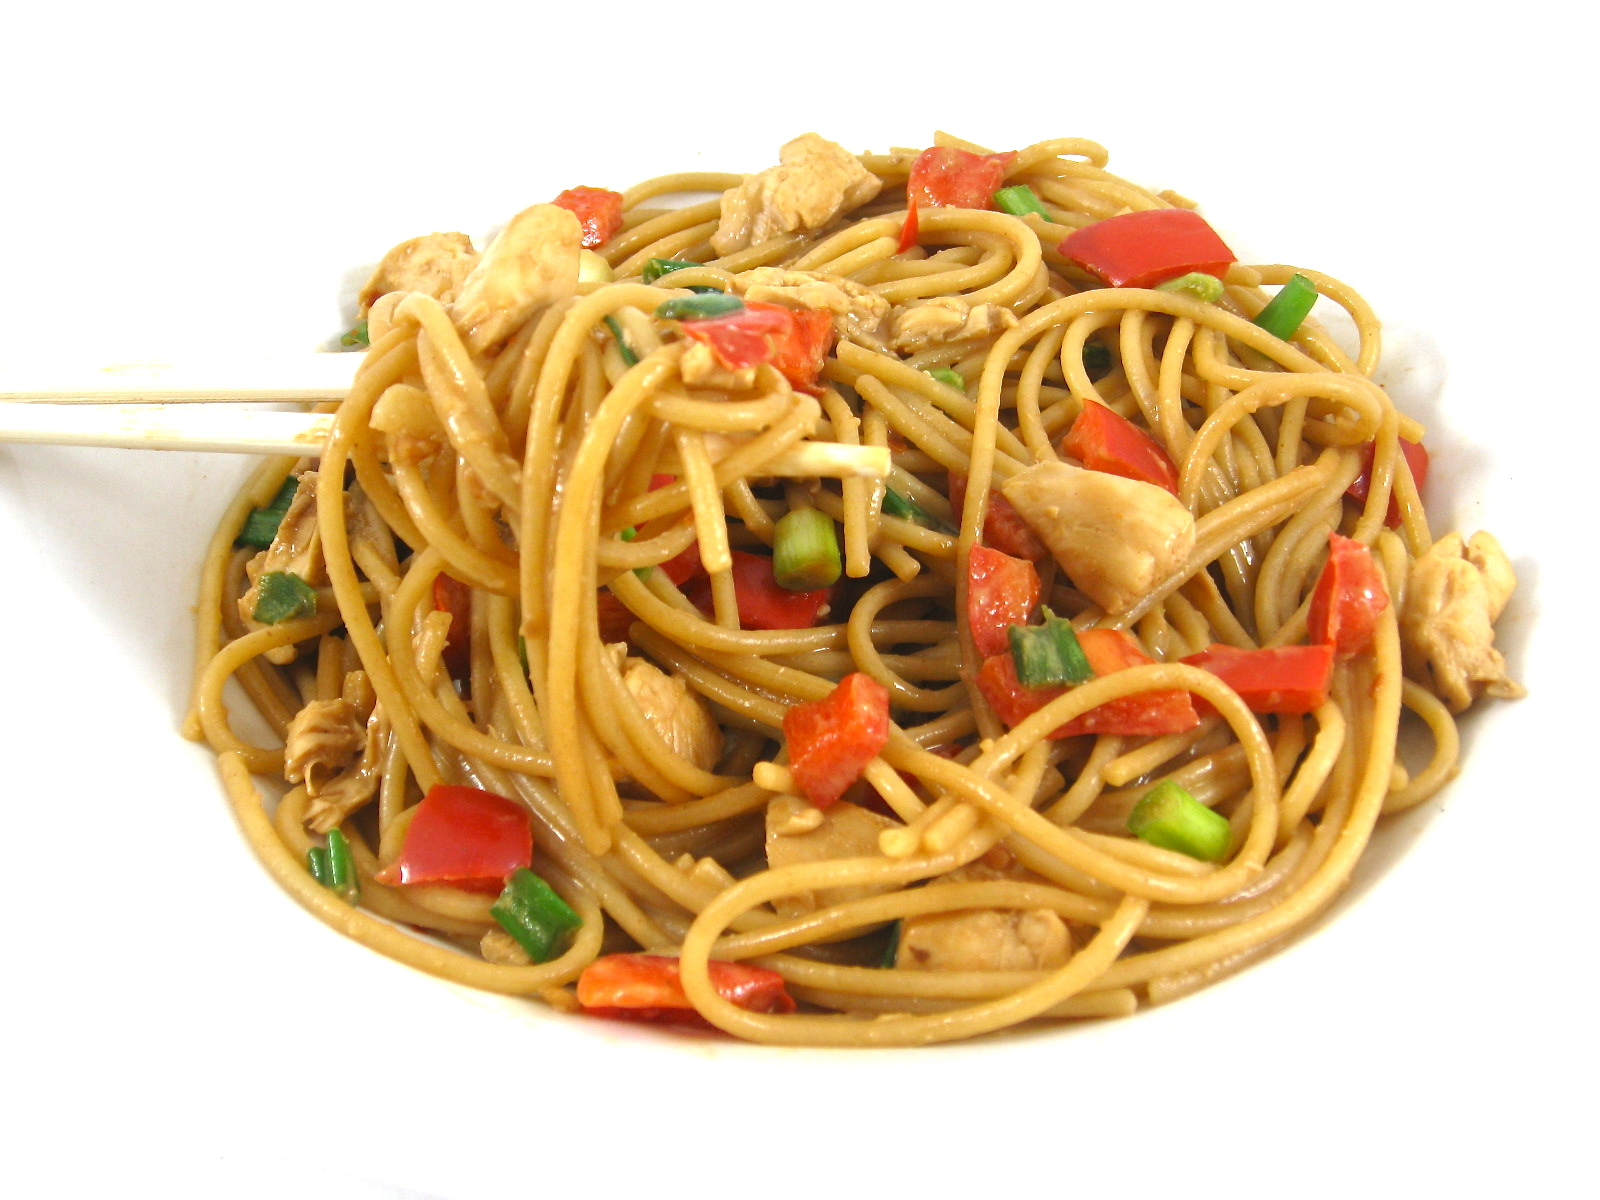 Skinny Thai Chicken and Peanut Noodles with Weight Watchers Points ...